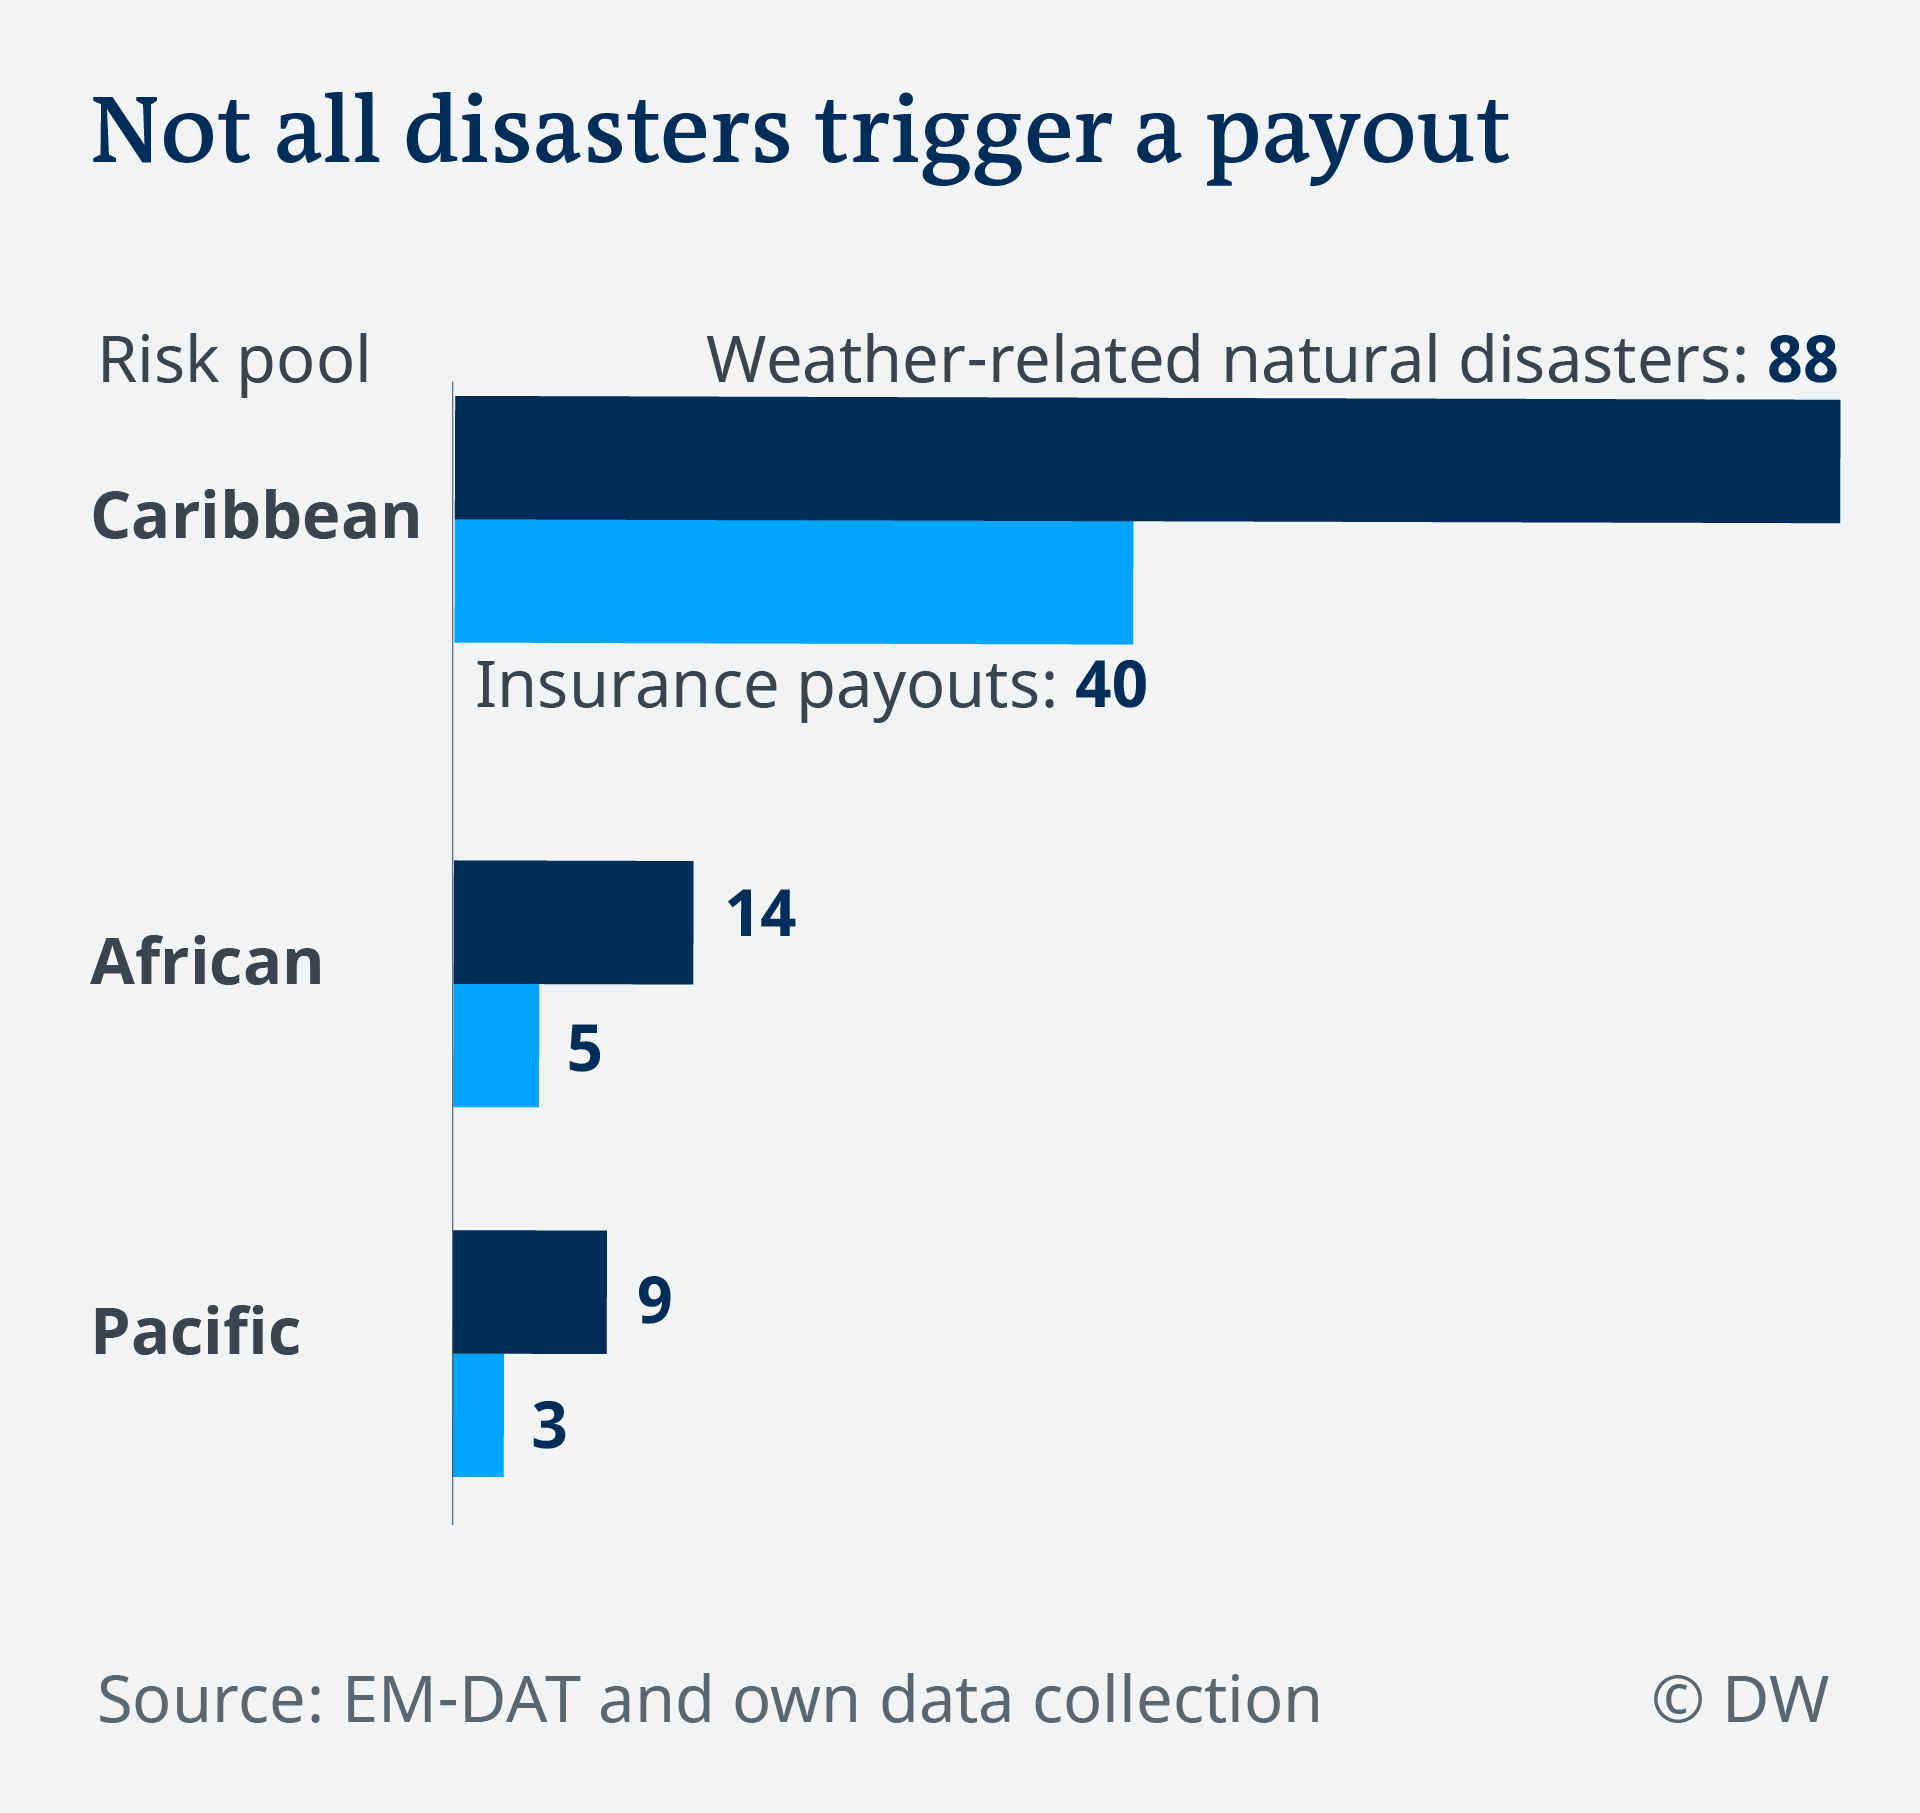 Data visualization climate risk insurance: Disasters versus payouts